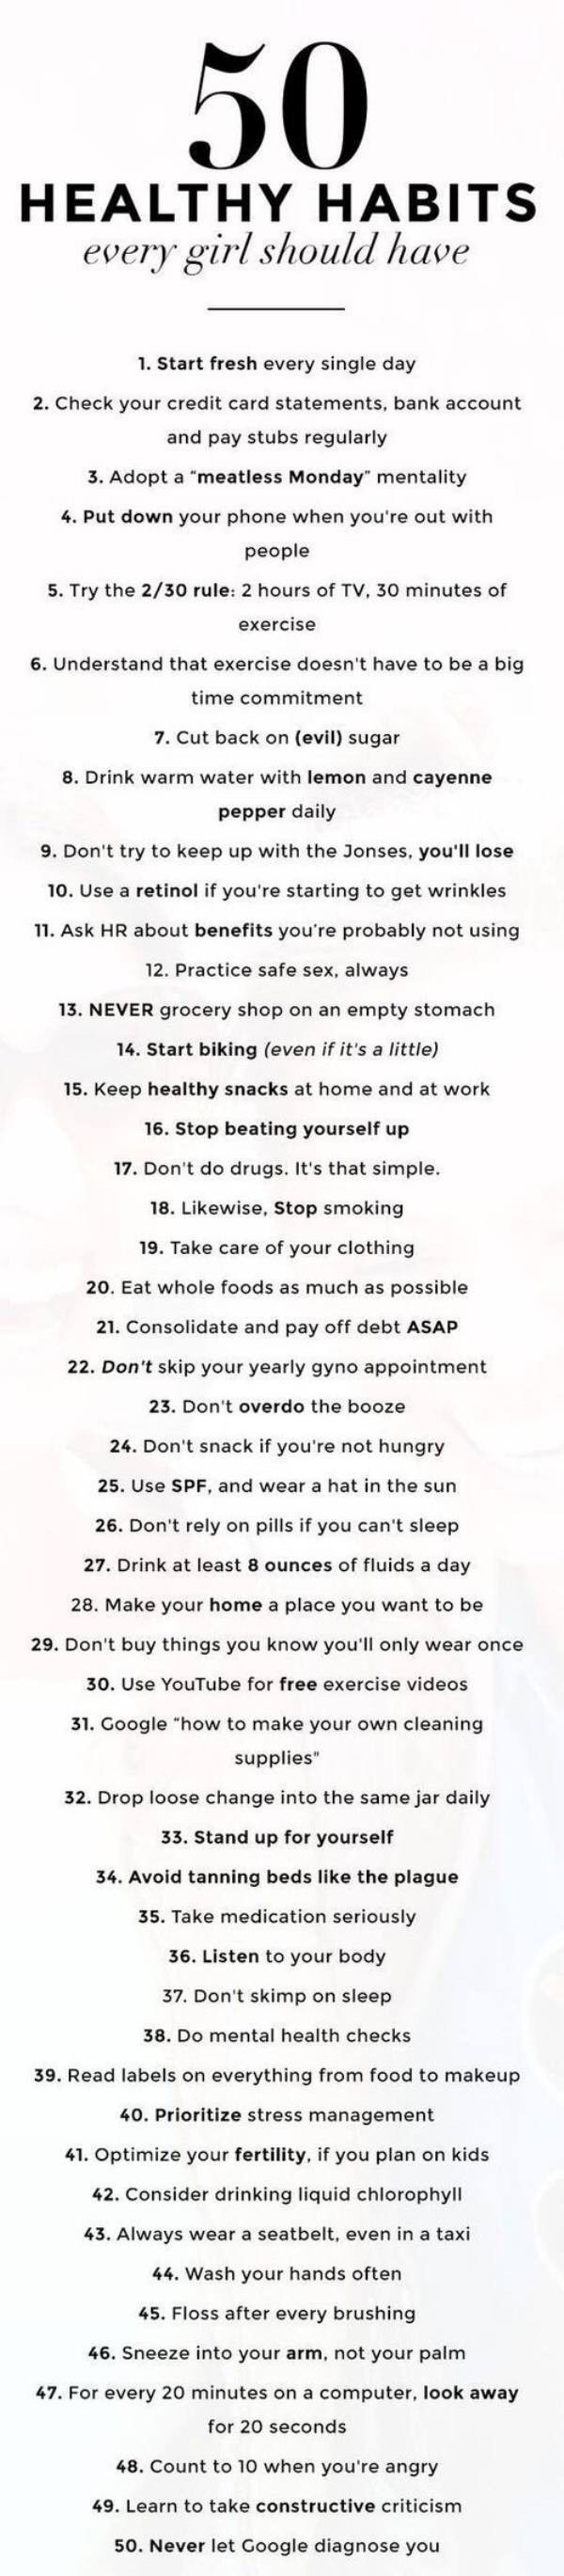 Tips for EVERY woman!